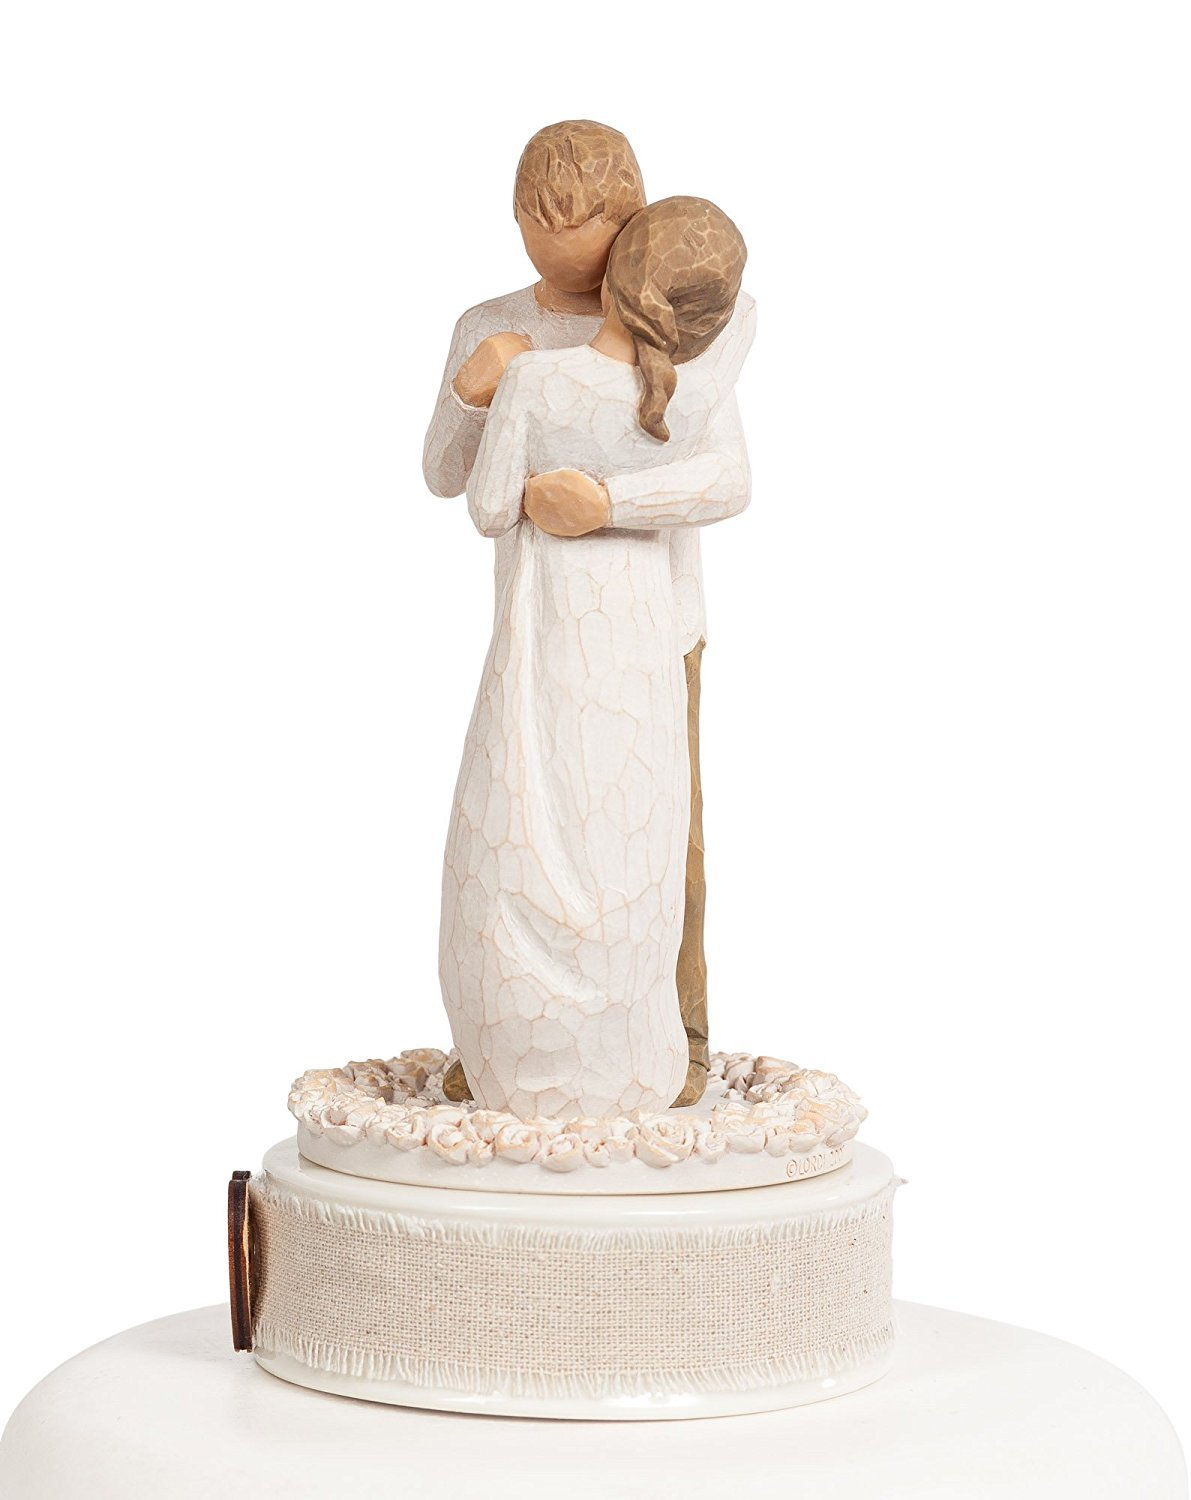 Personalized Willow Tree''Promise'' Wedding Cake Topper By Wedding Collectibles by DEMDACO - Home (Image #3)